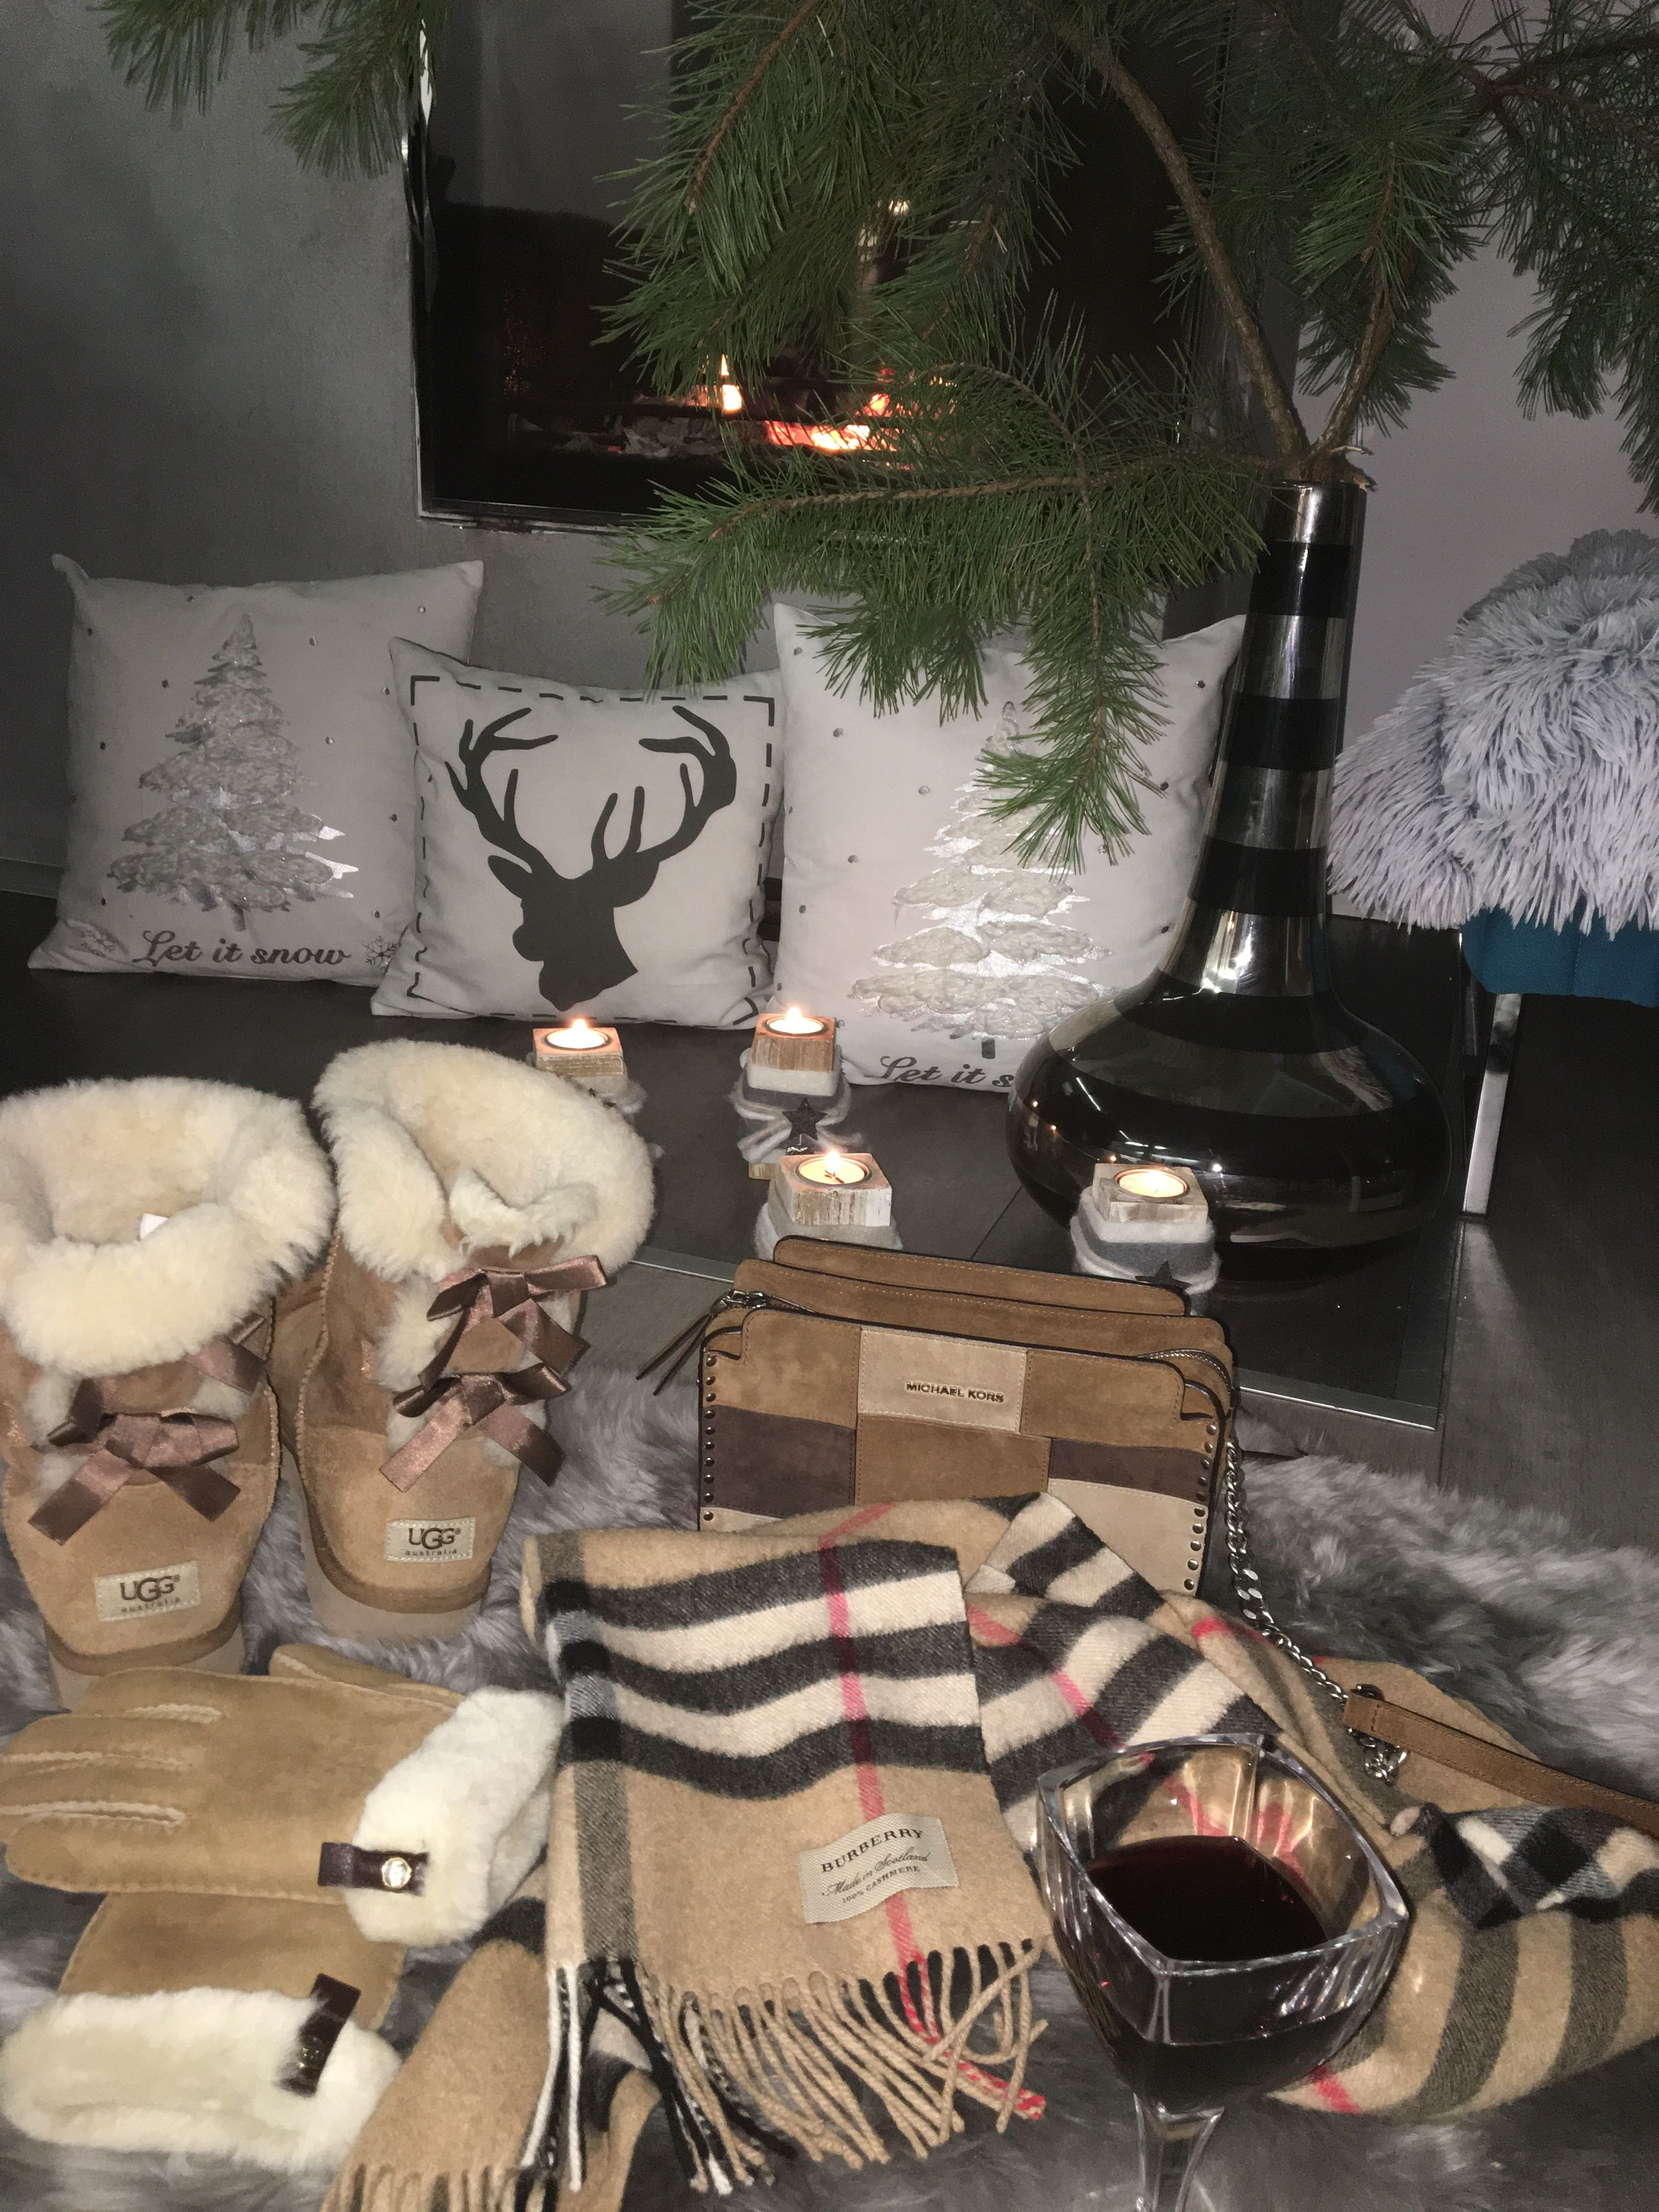 Ugg Shoes Home Sweet Burberry Xmas Michael Kors